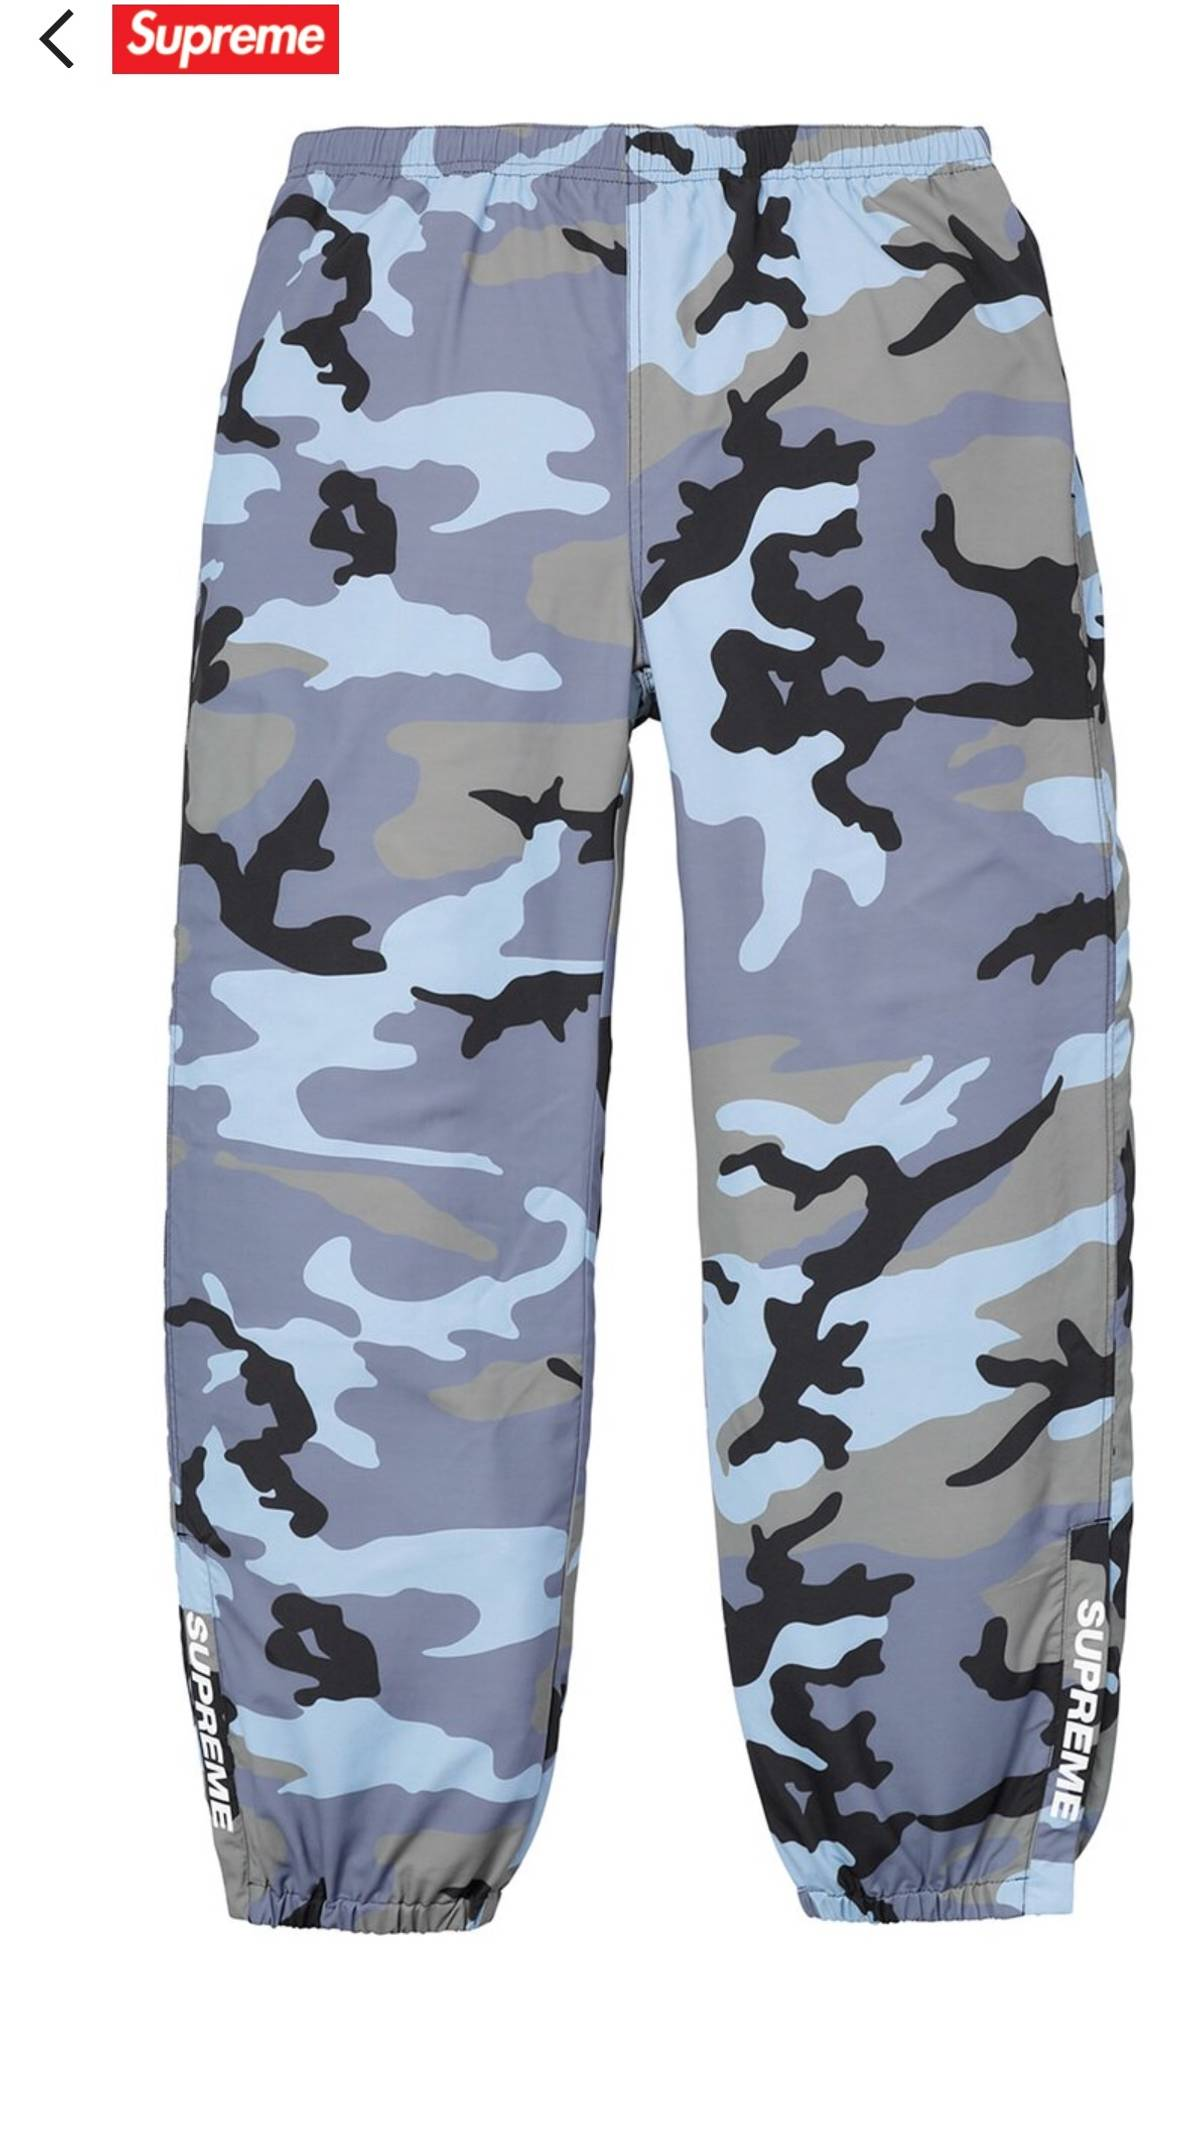 a32945b425d41 Supreme Supreme Blue Camo Warm Up Pant | Grailed